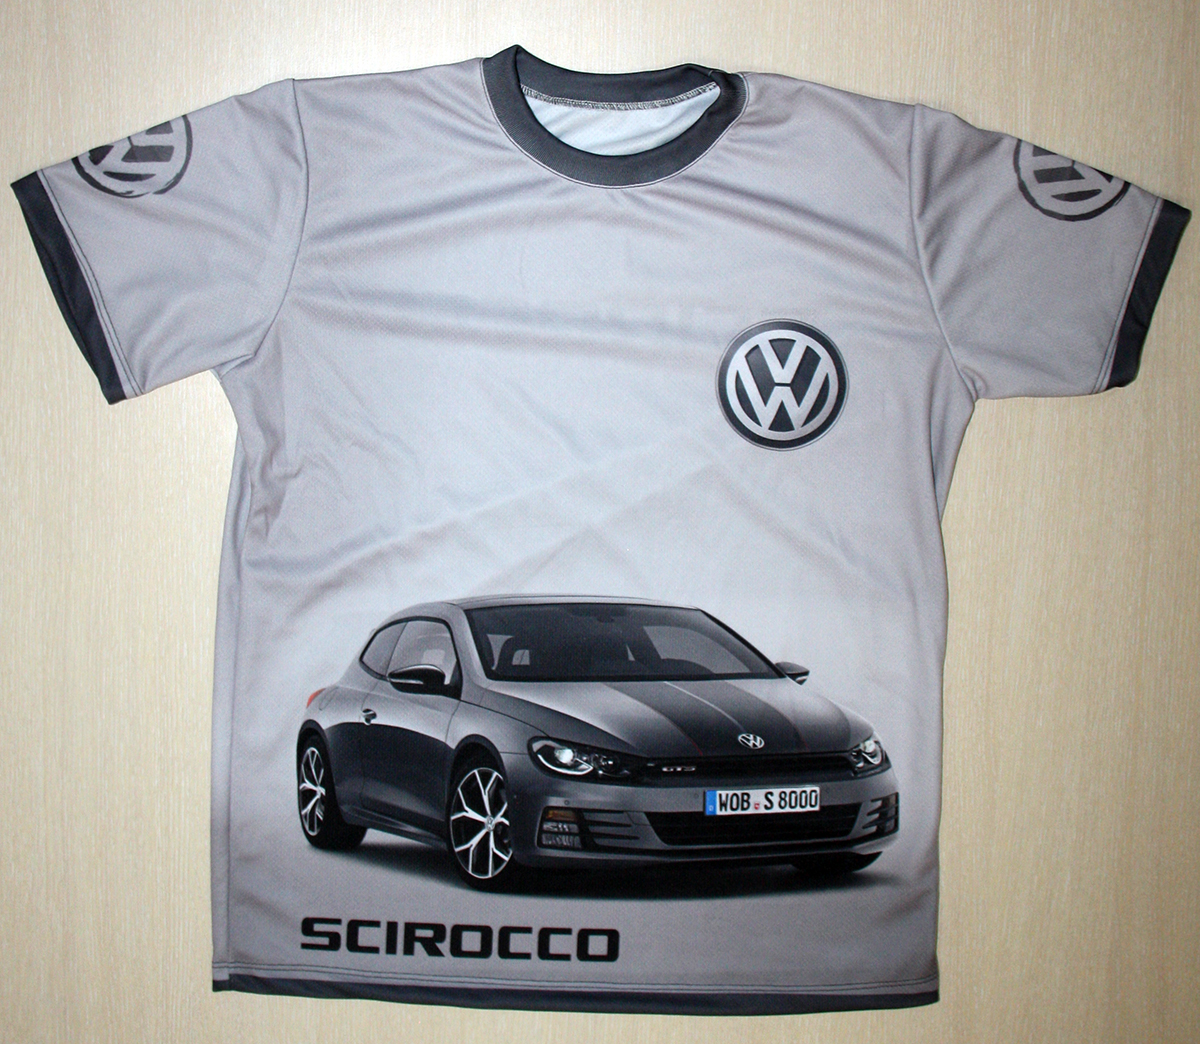 vw scirocco t shirt with logo and all over printed picture. Black Bedroom Furniture Sets. Home Design Ideas